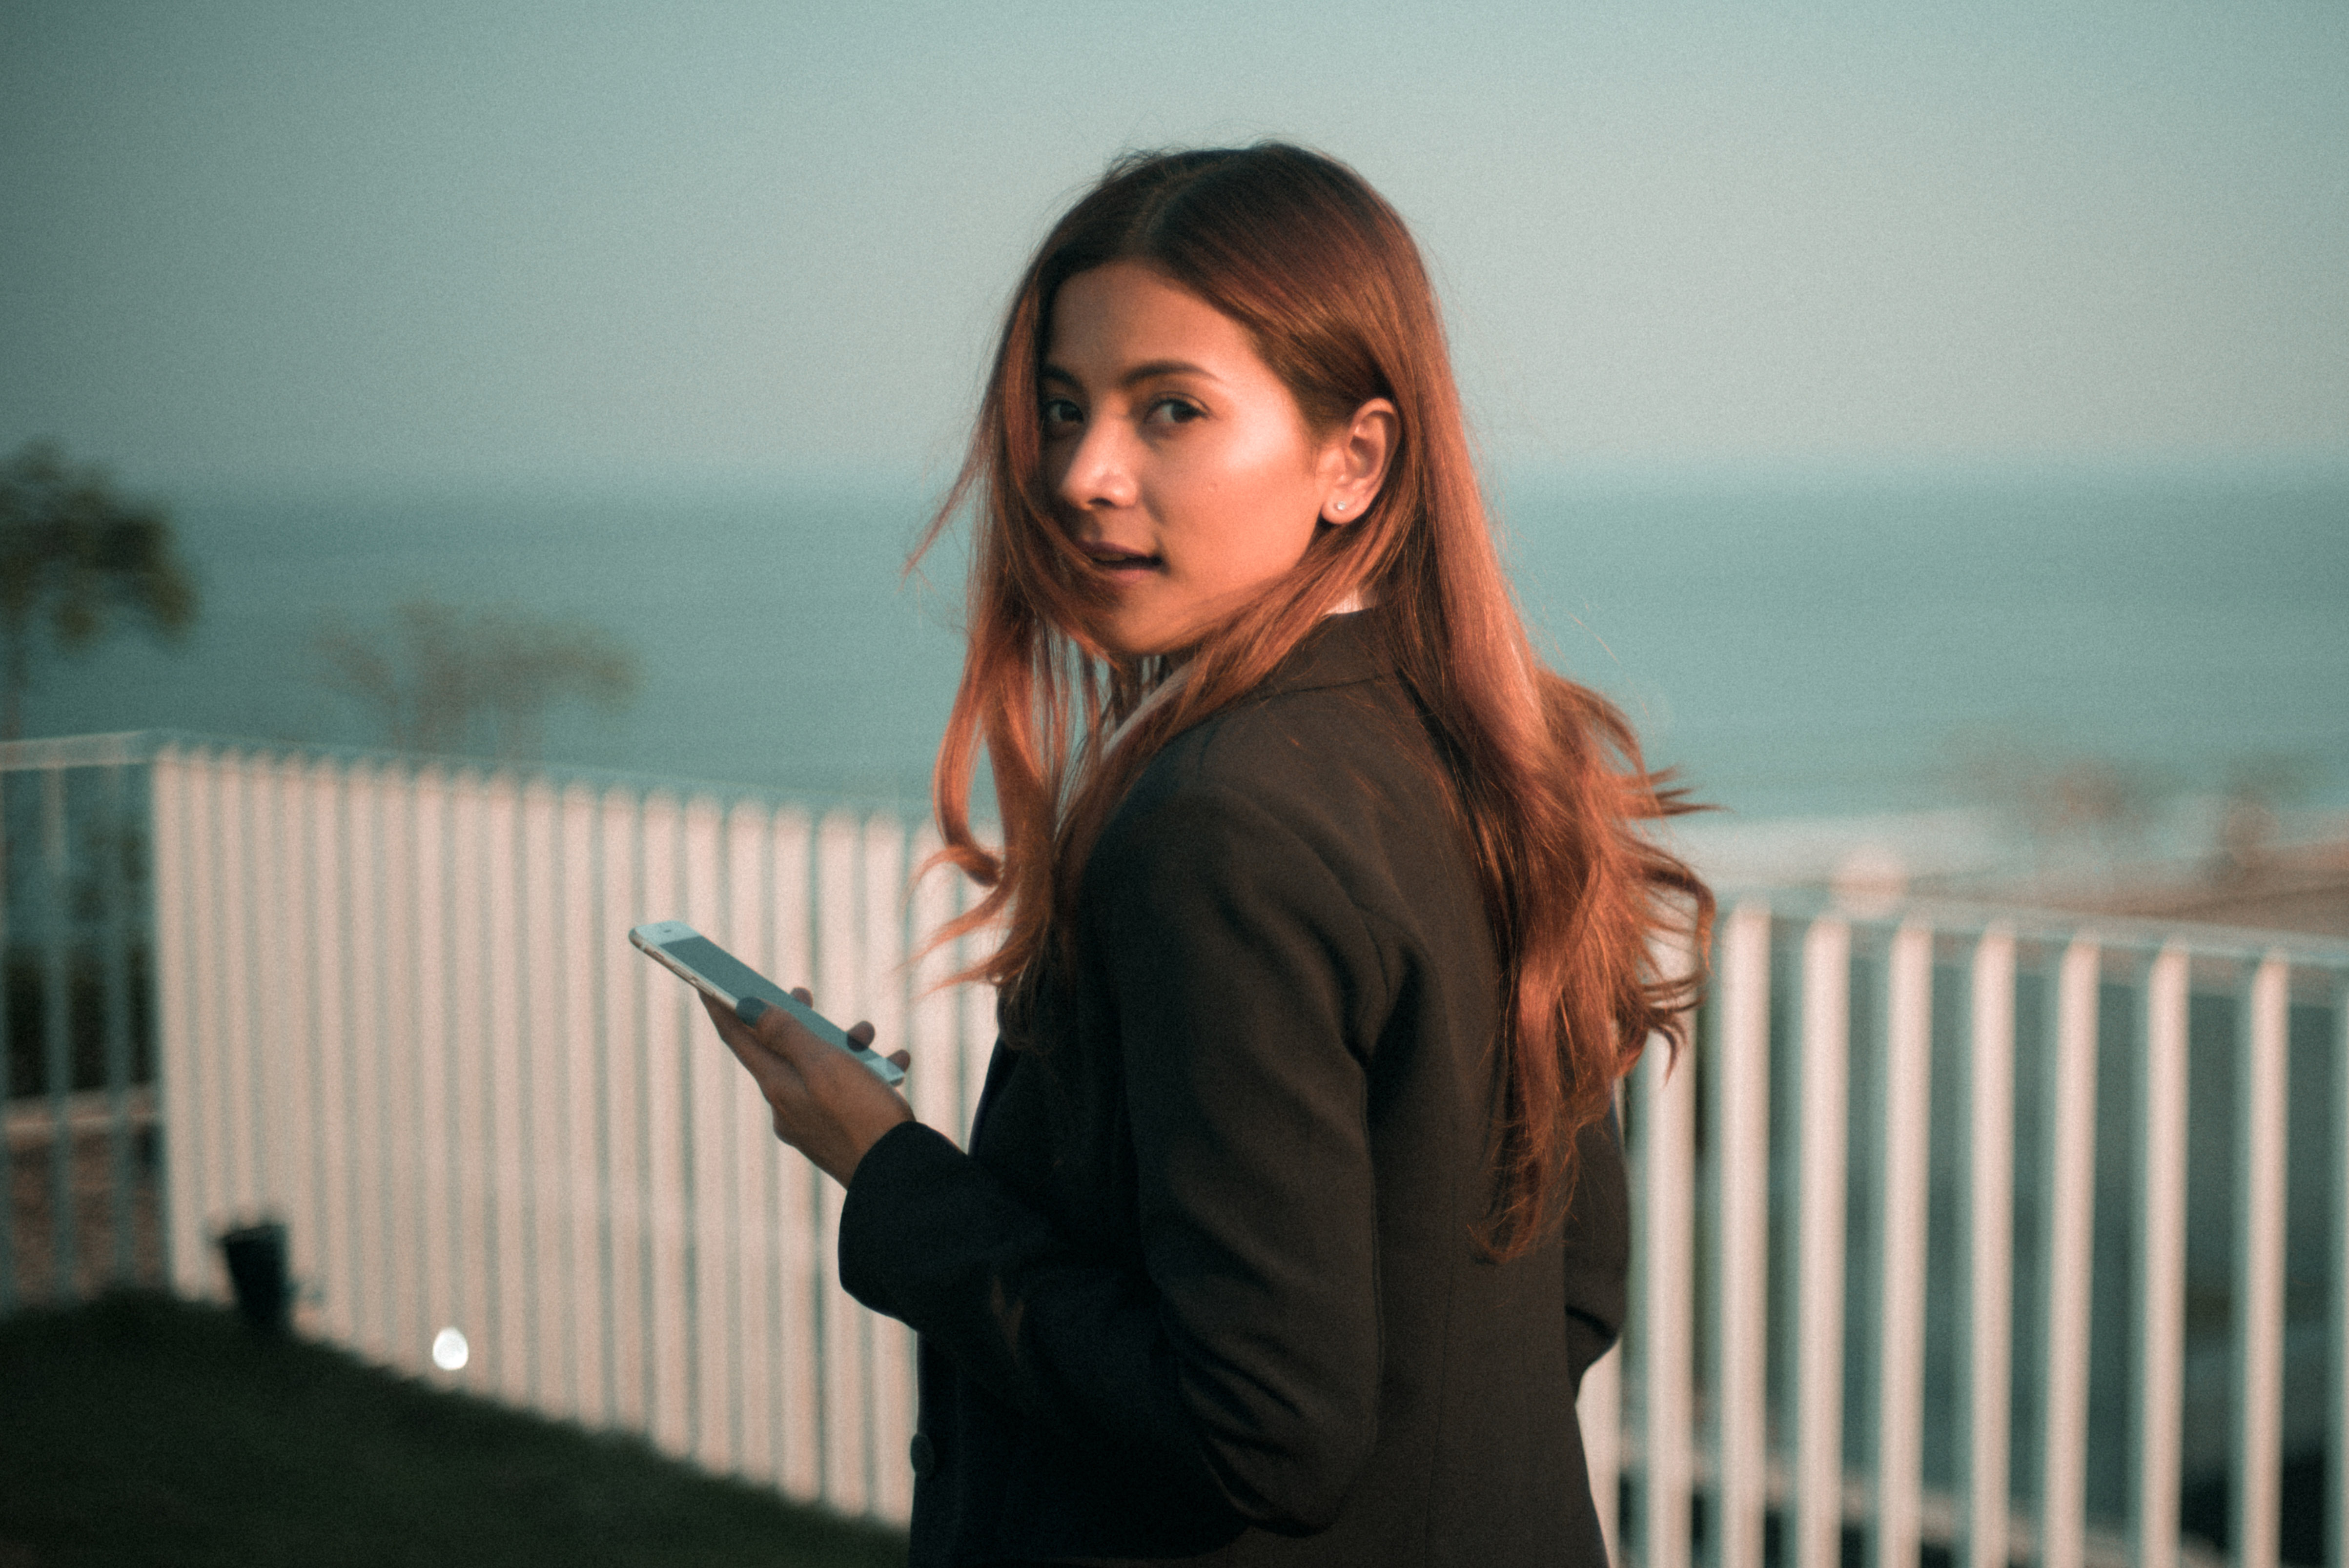 woman-looking-back-at-camera-holding-a-smartphone.jpg